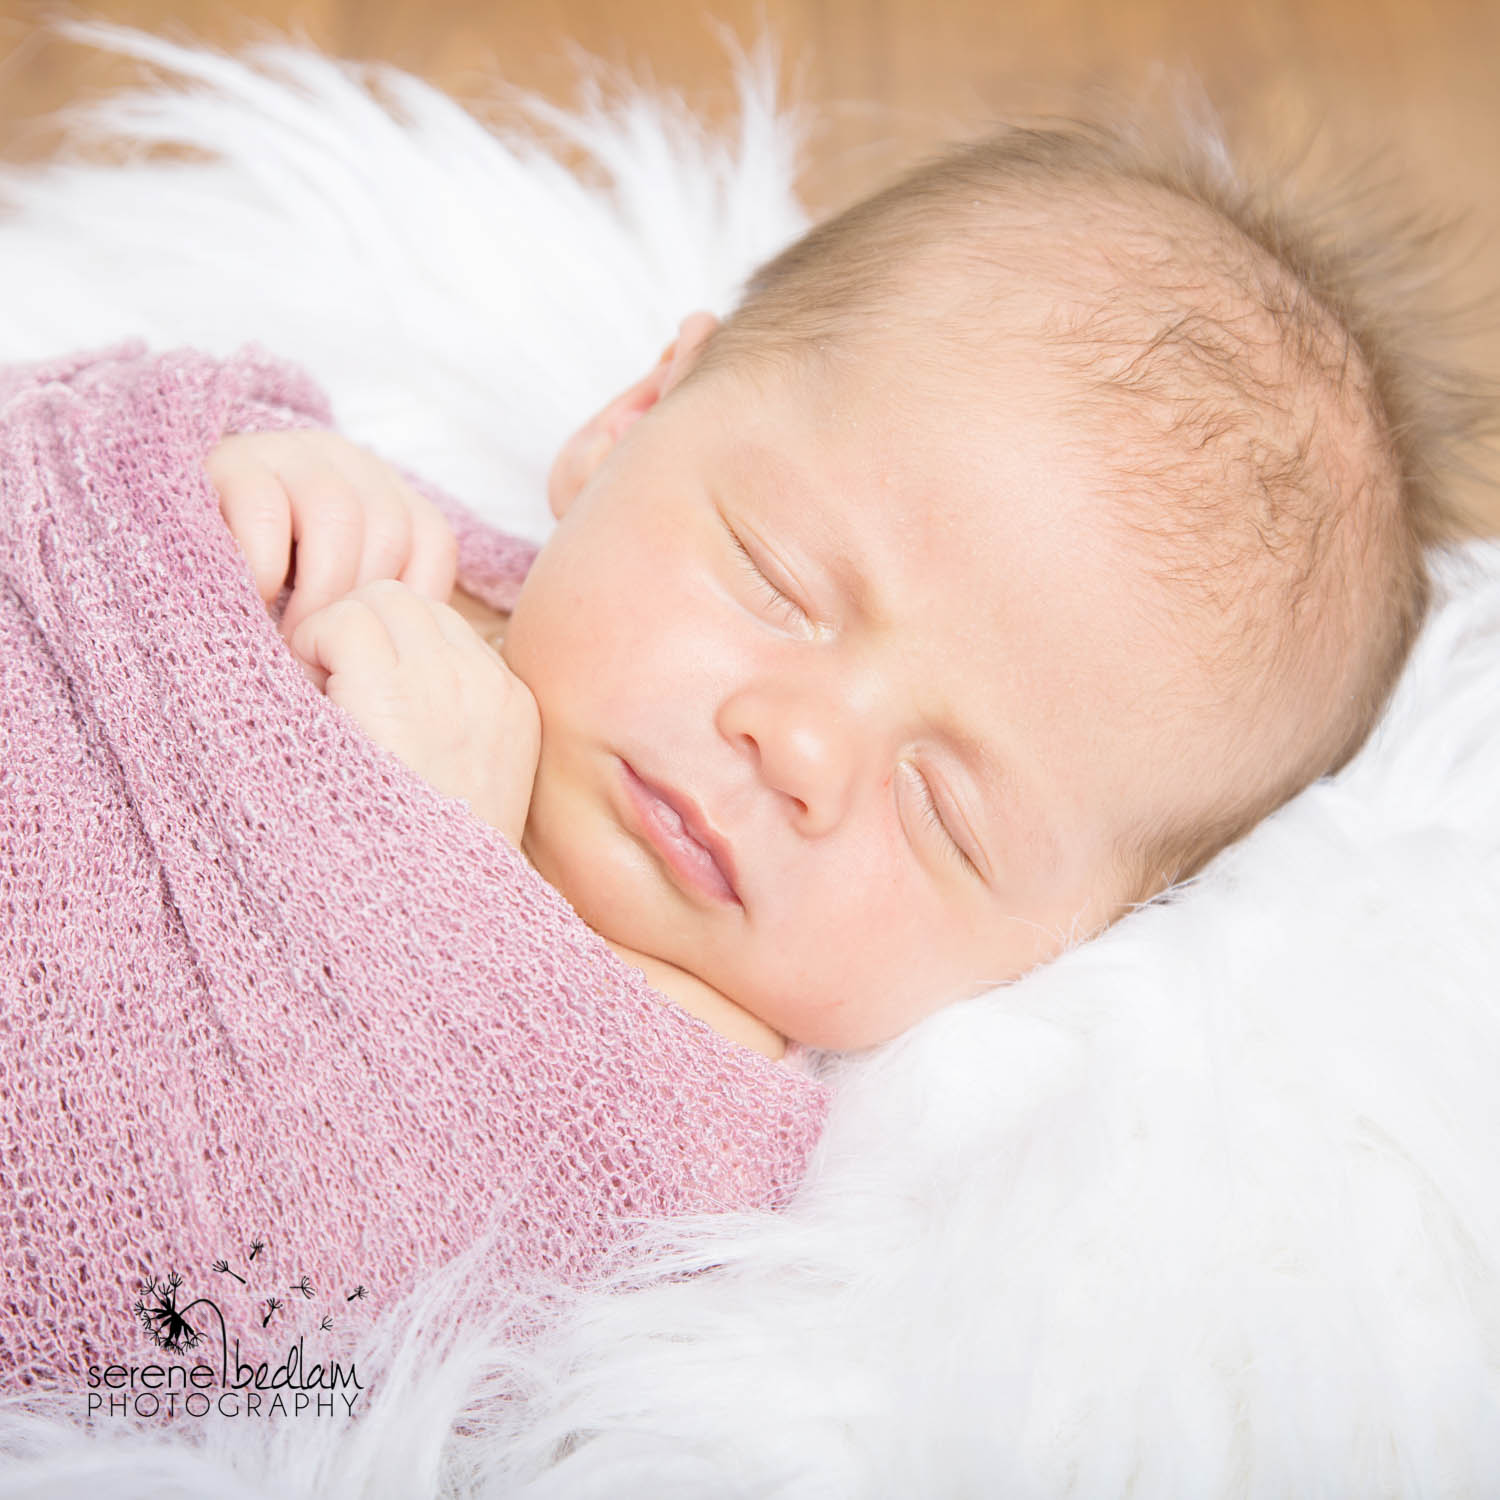 Serene Bedlam Newman Newborn Photography (9 of 10)